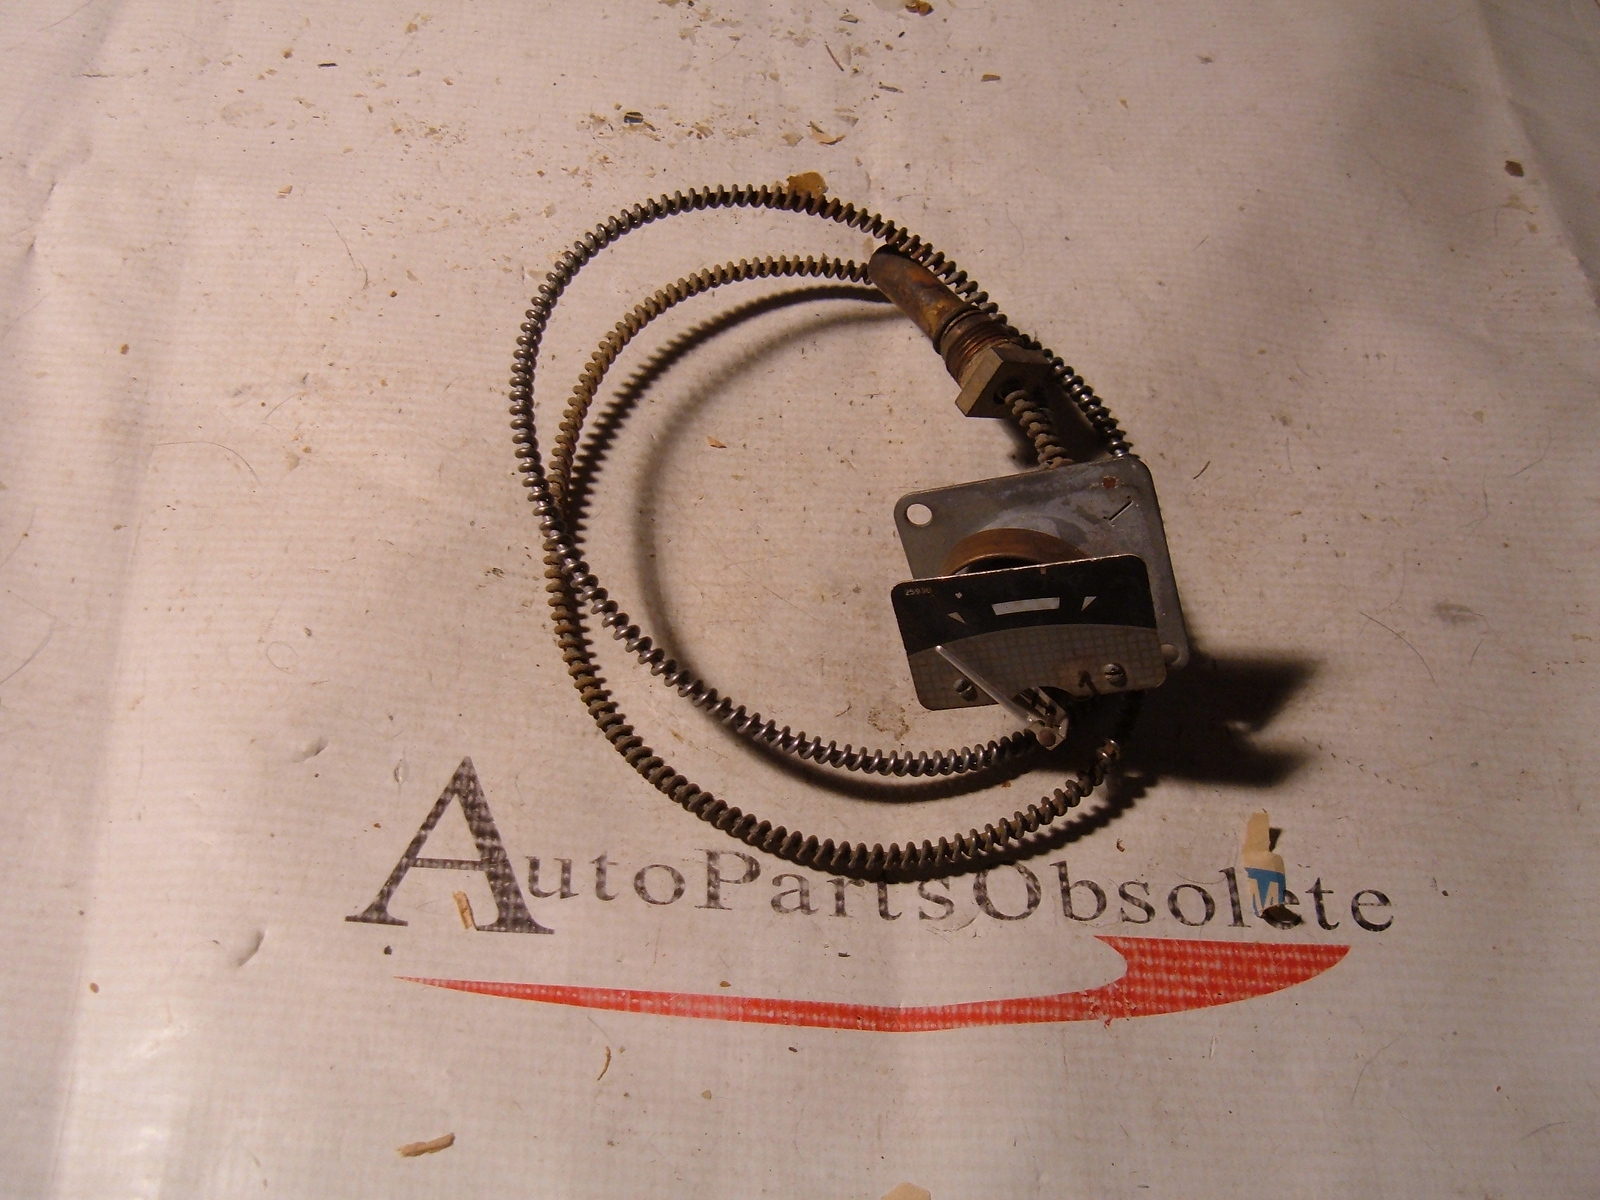 1951 52 dodge temperature gauge nos mopar # 1473882 (z 1473882)